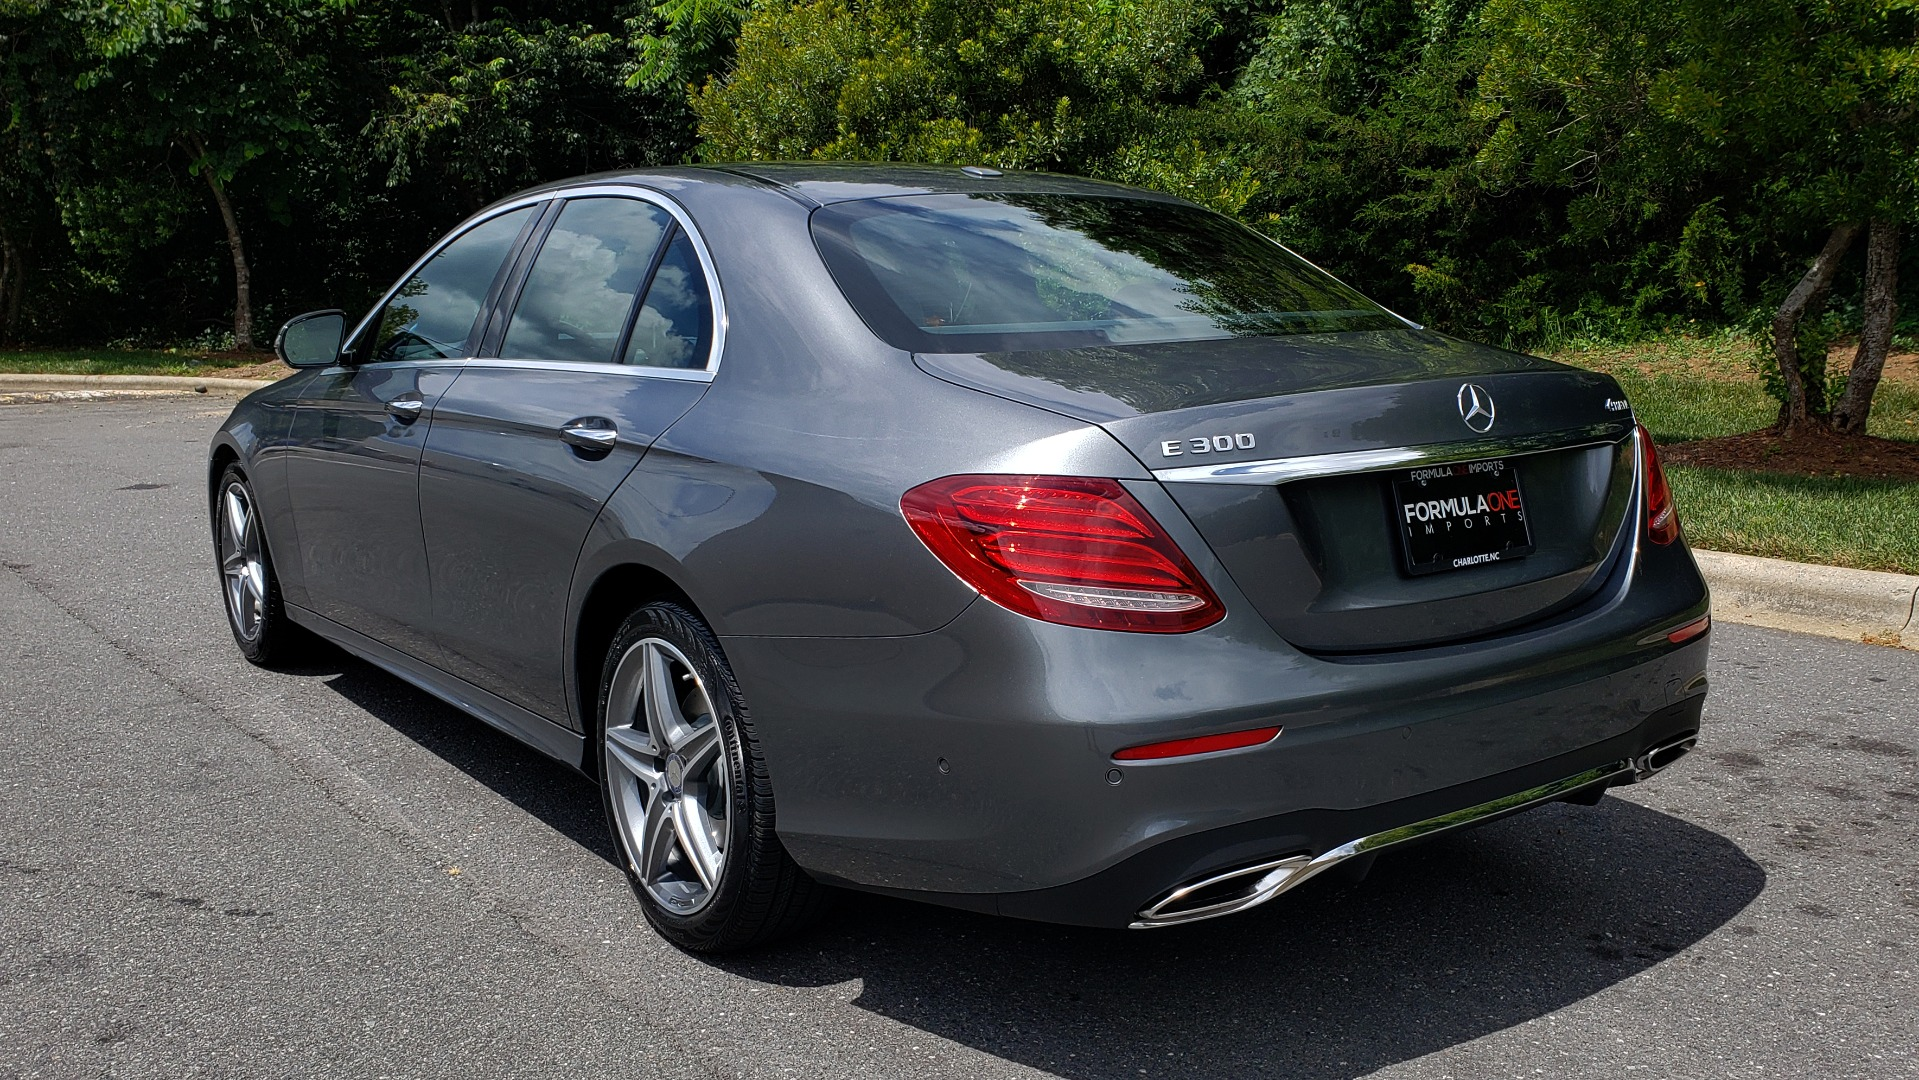 Used 2017 Mercedes-Benz E-Class E 300 4MATIC PREMIUM / SPORT / NAV / BURMESTER / HTD STS / REARVIEW for sale $30,495 at Formula Imports in Charlotte NC 28227 3